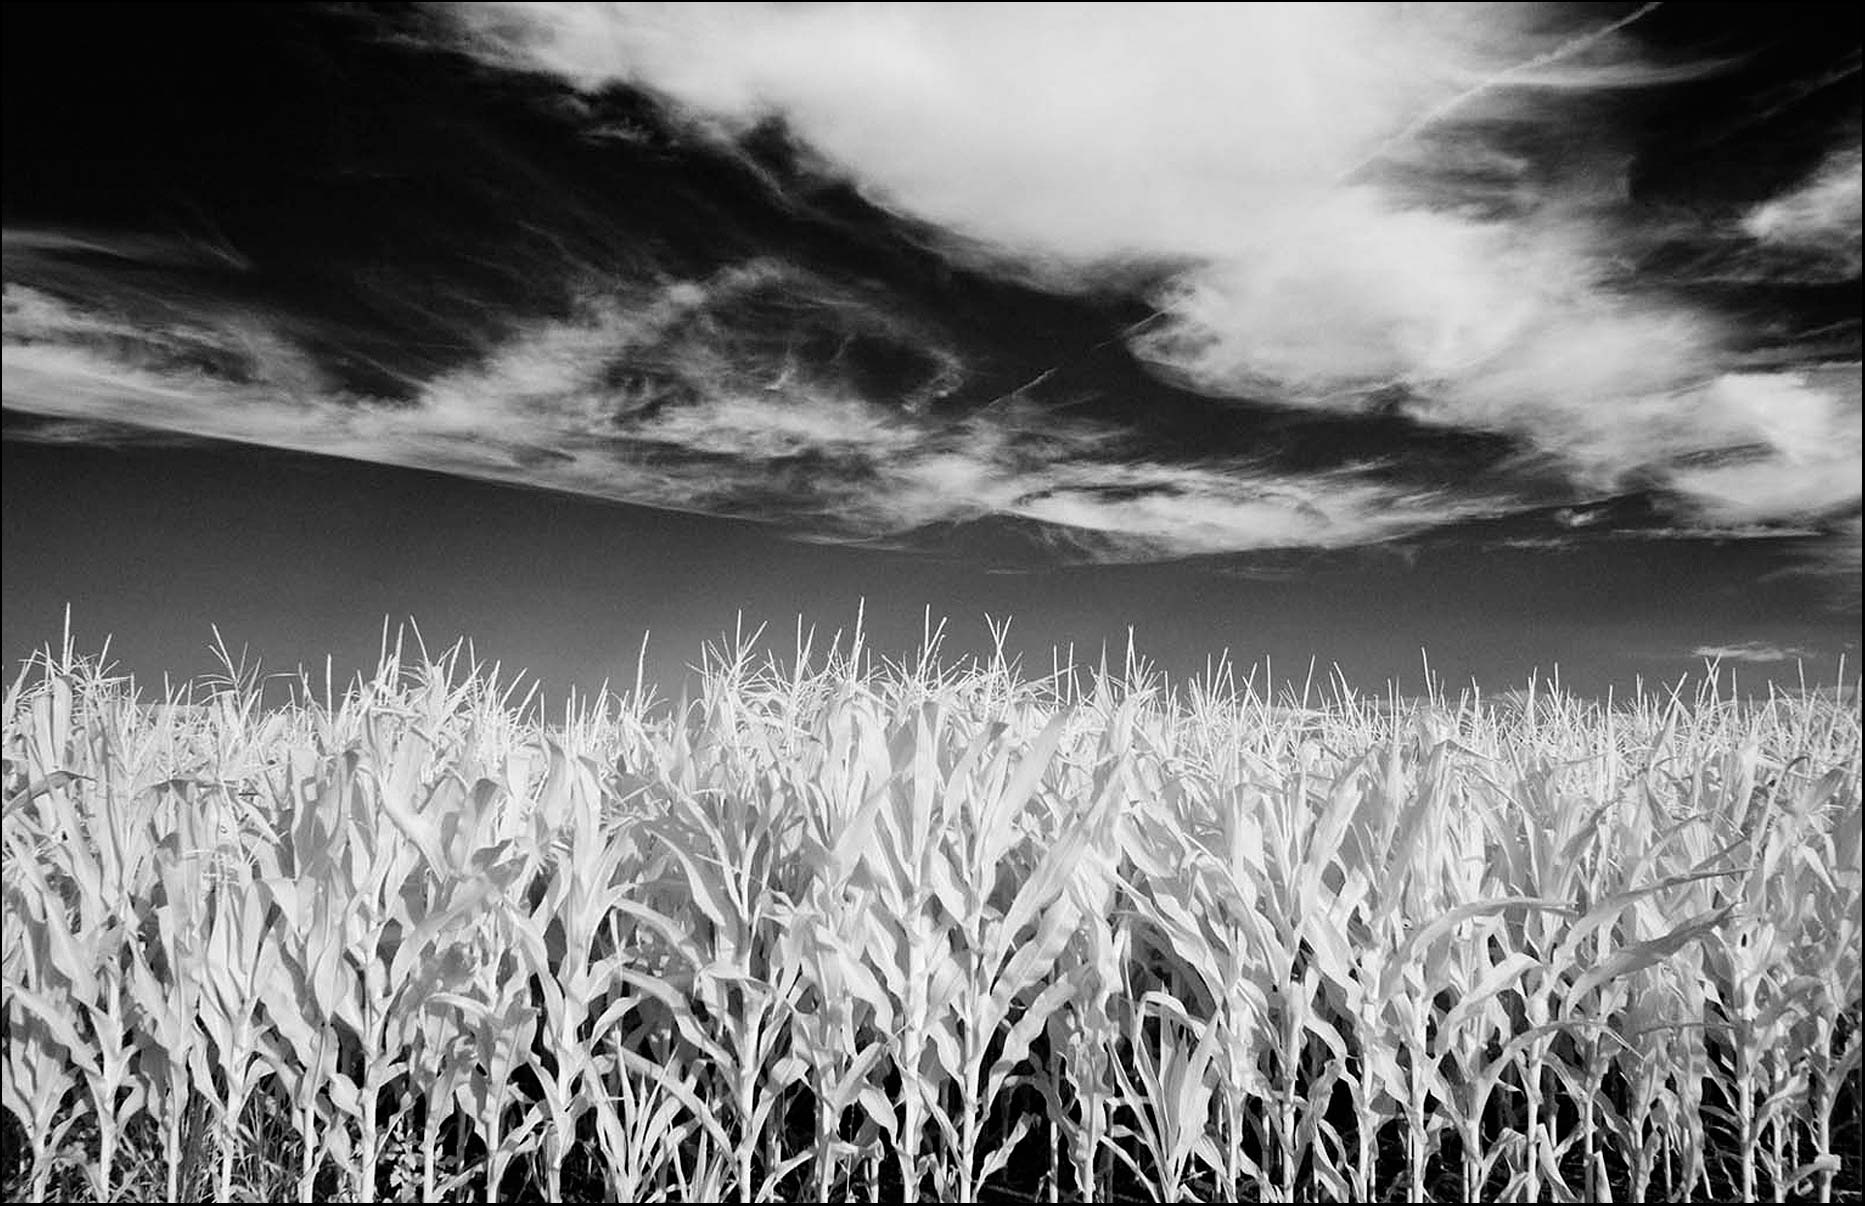 Black and white infrared image of a Cornfield in Ohio